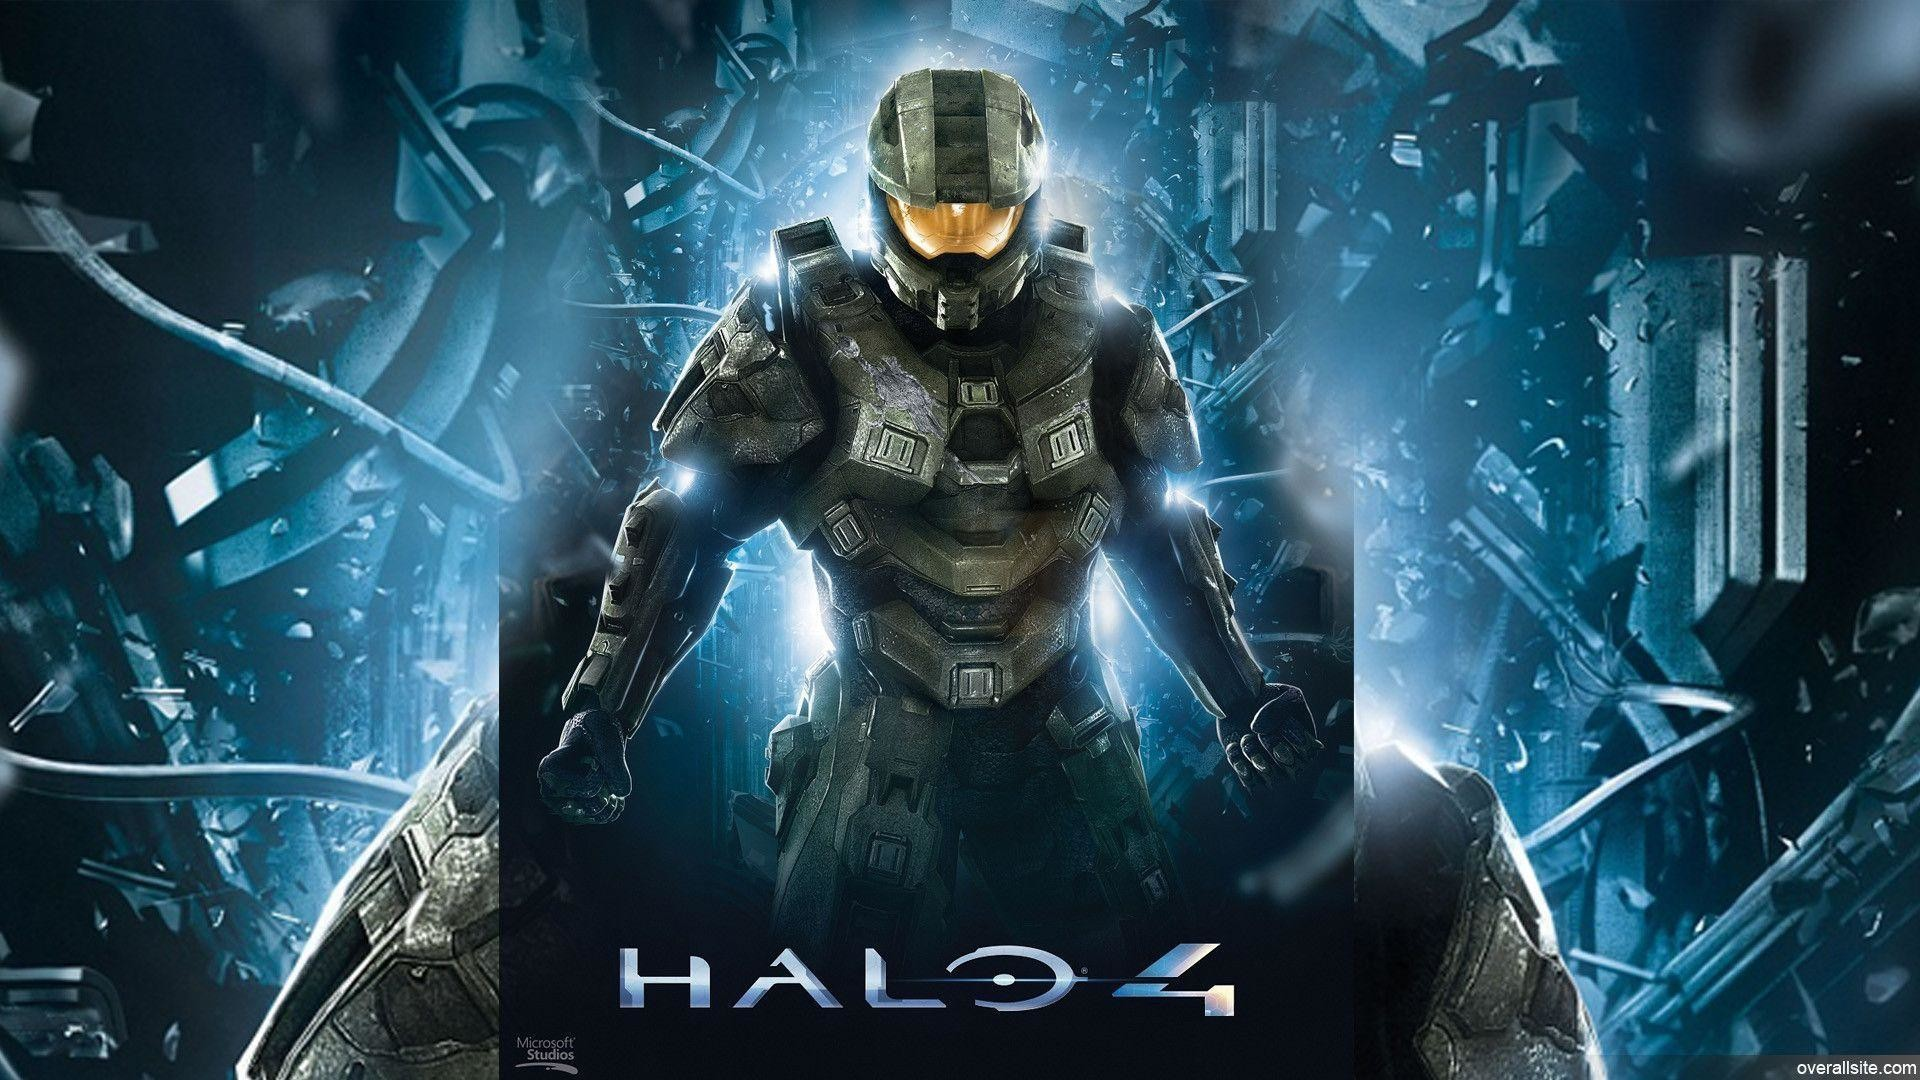 Cool Halo Wallpapers Overallsite Scuta Gaming 1920x1080PX .